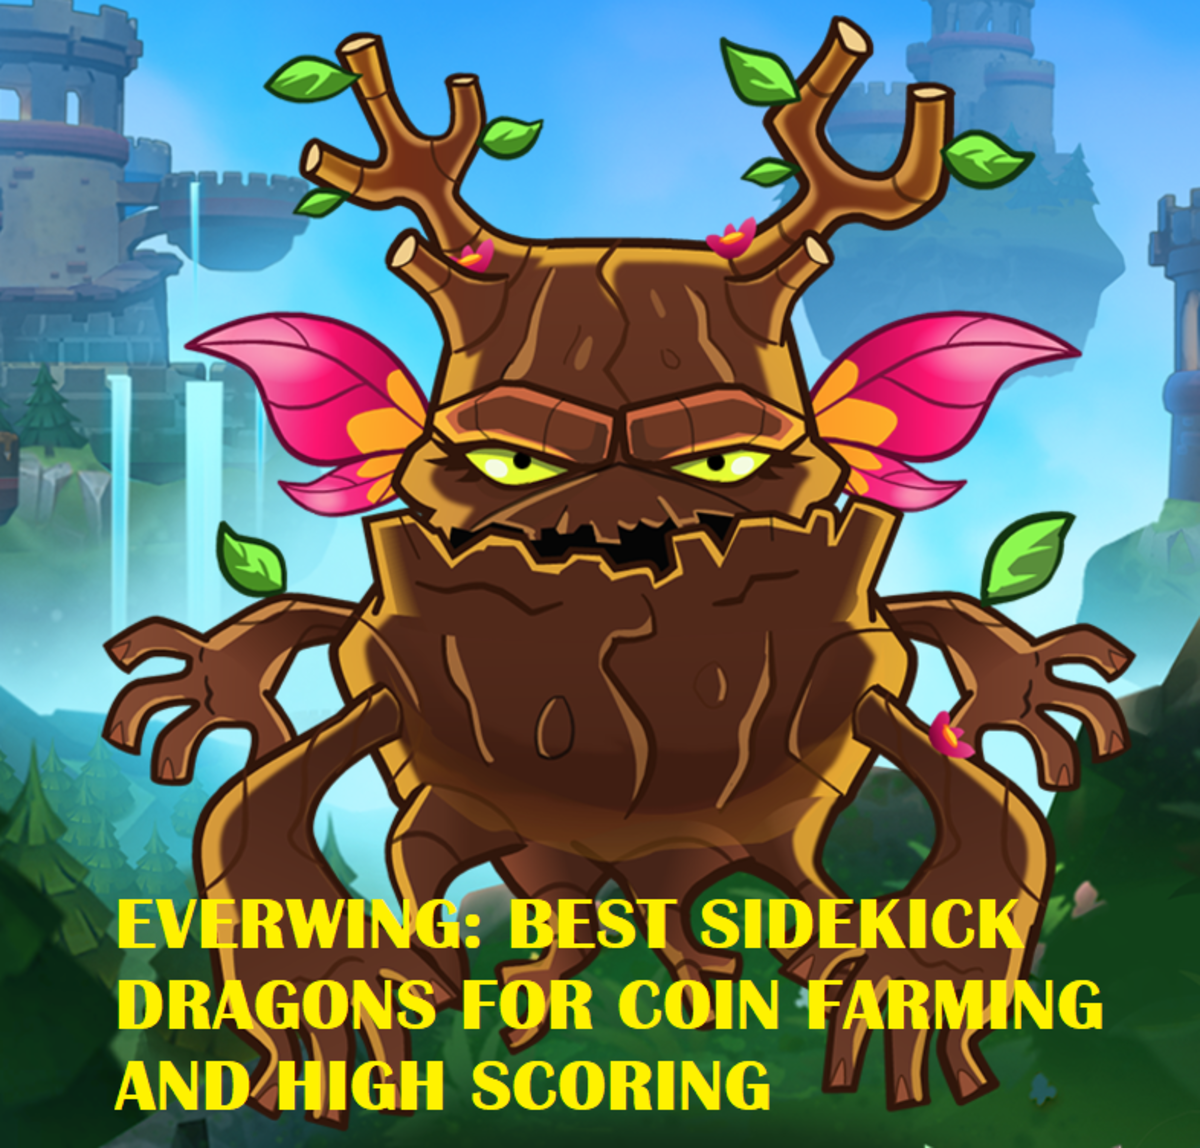 EverWing: Best Dragons for Coin Farming and High Scoring